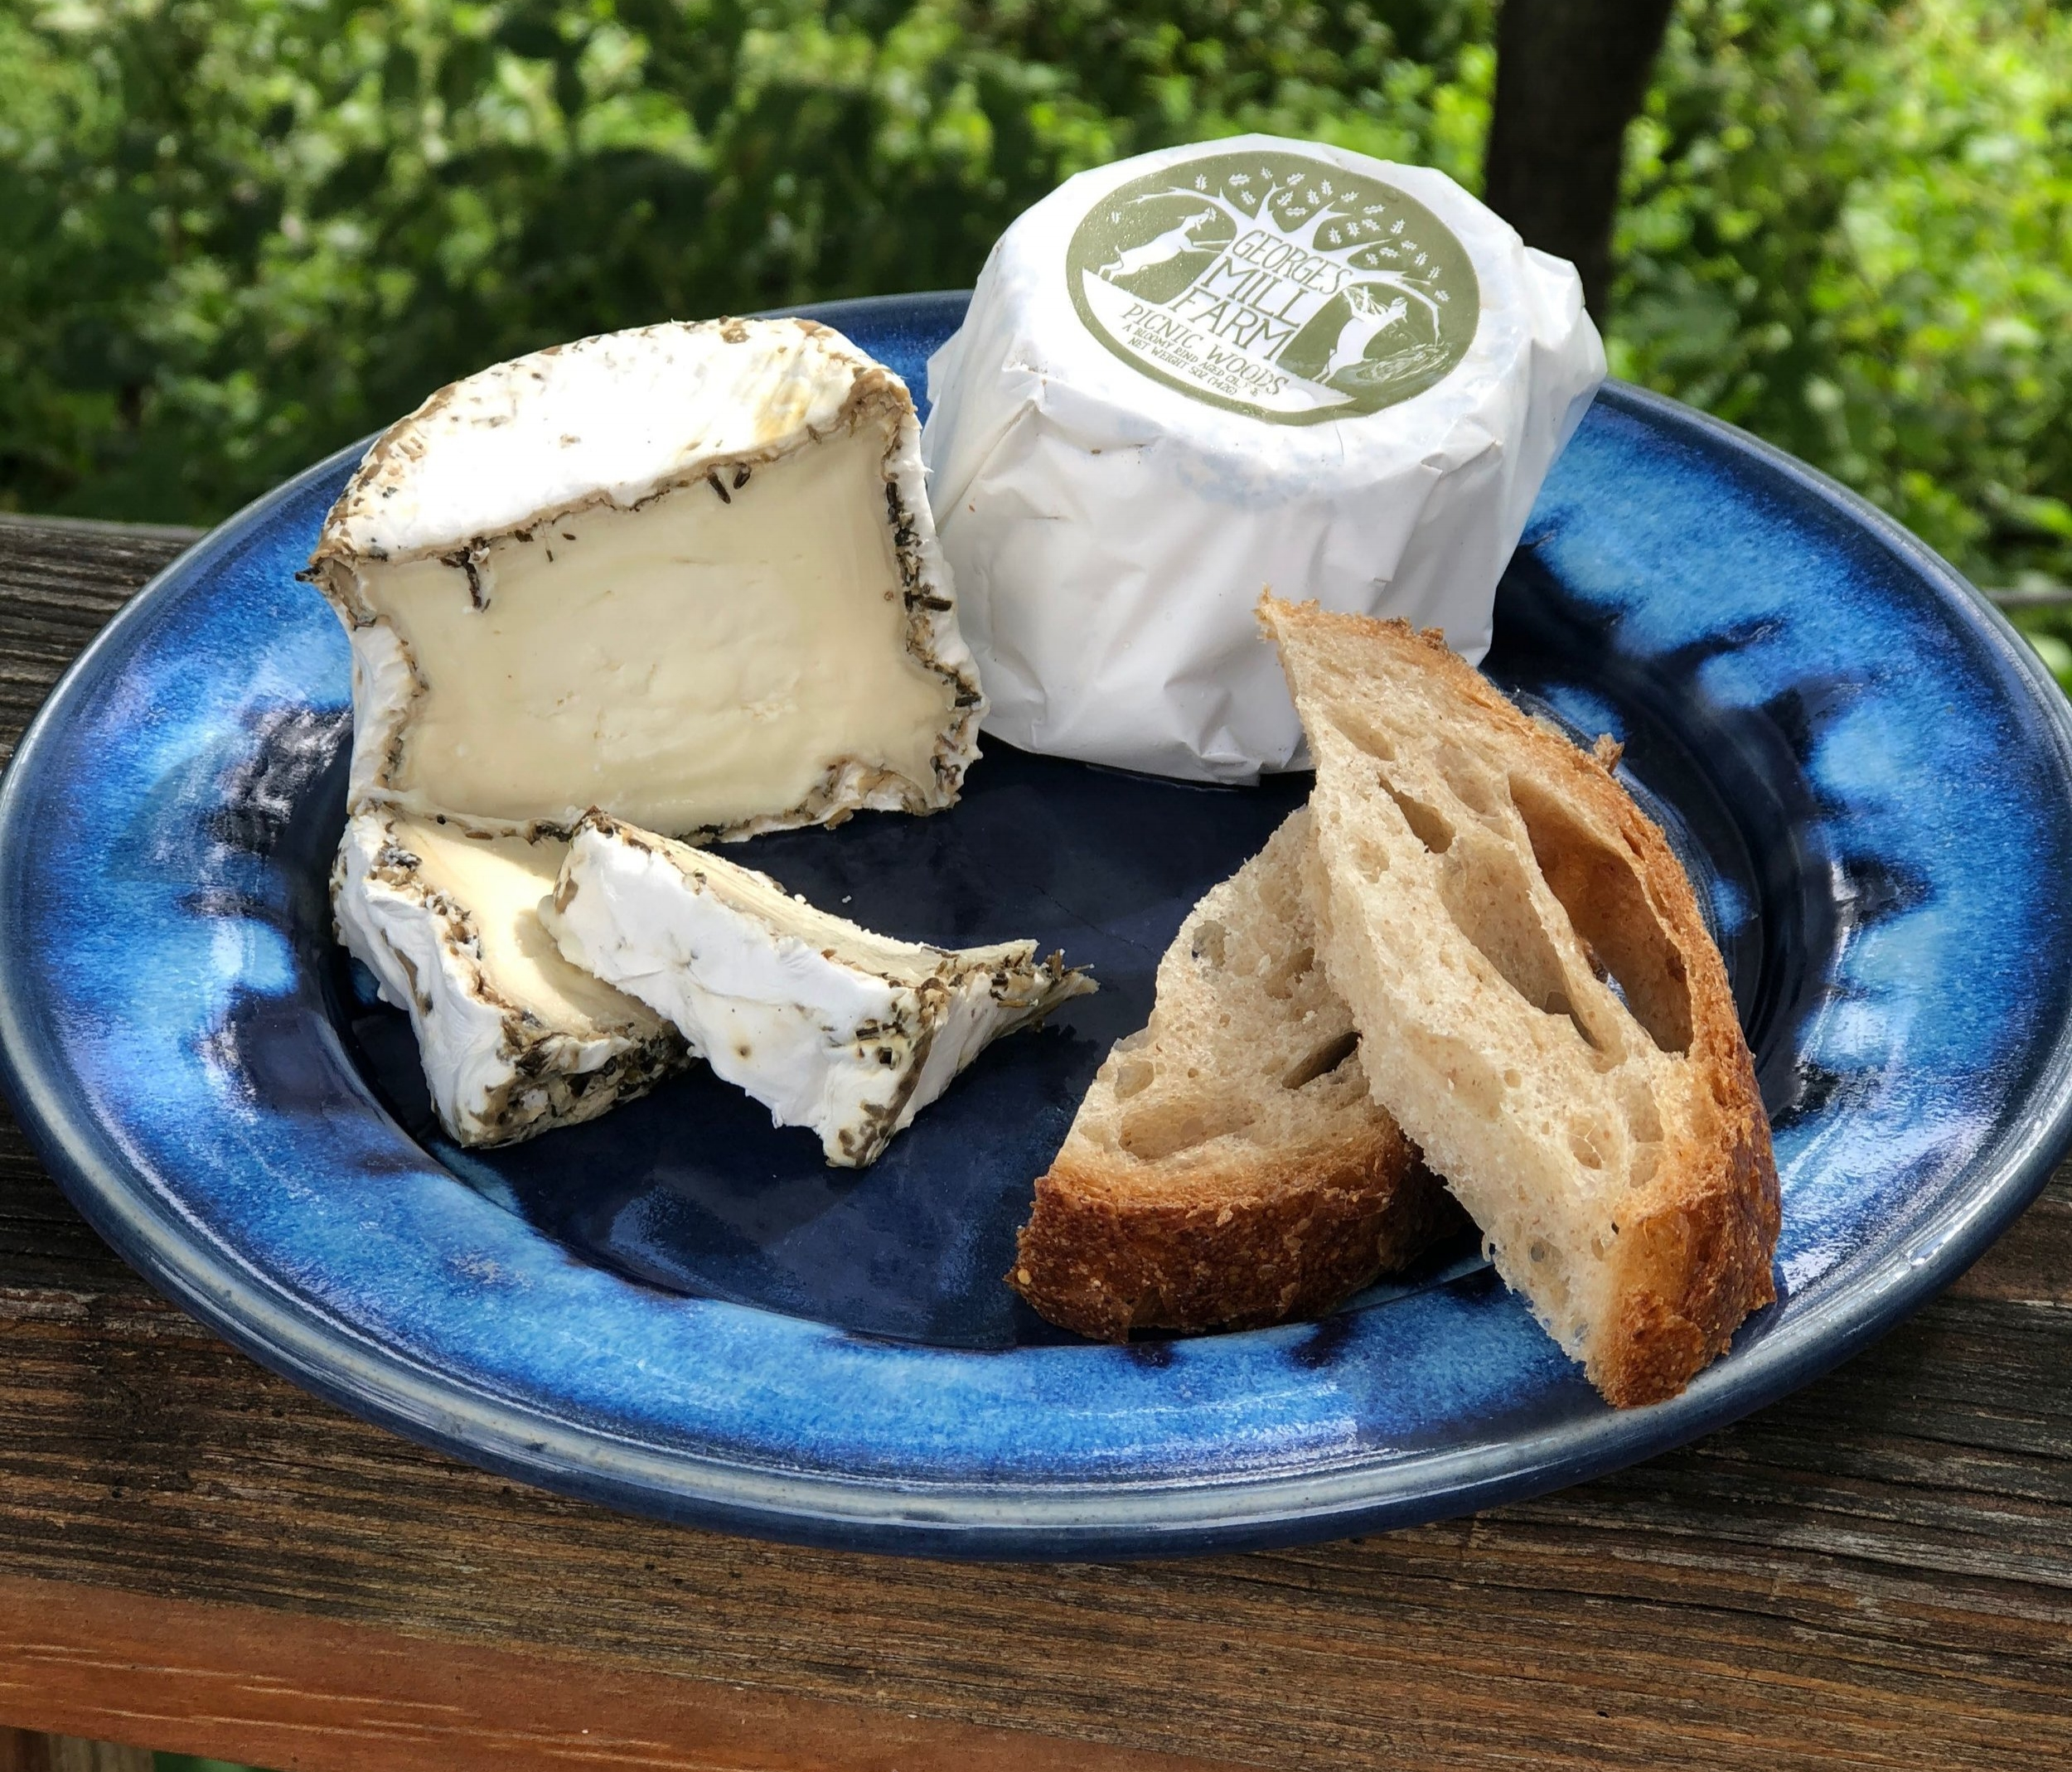 Picnic Woods , our herbed bloomy rind, rolled in herbs de provence and aged 2-8 weeks during which it changes from firm and herbacious to soft and earthy.